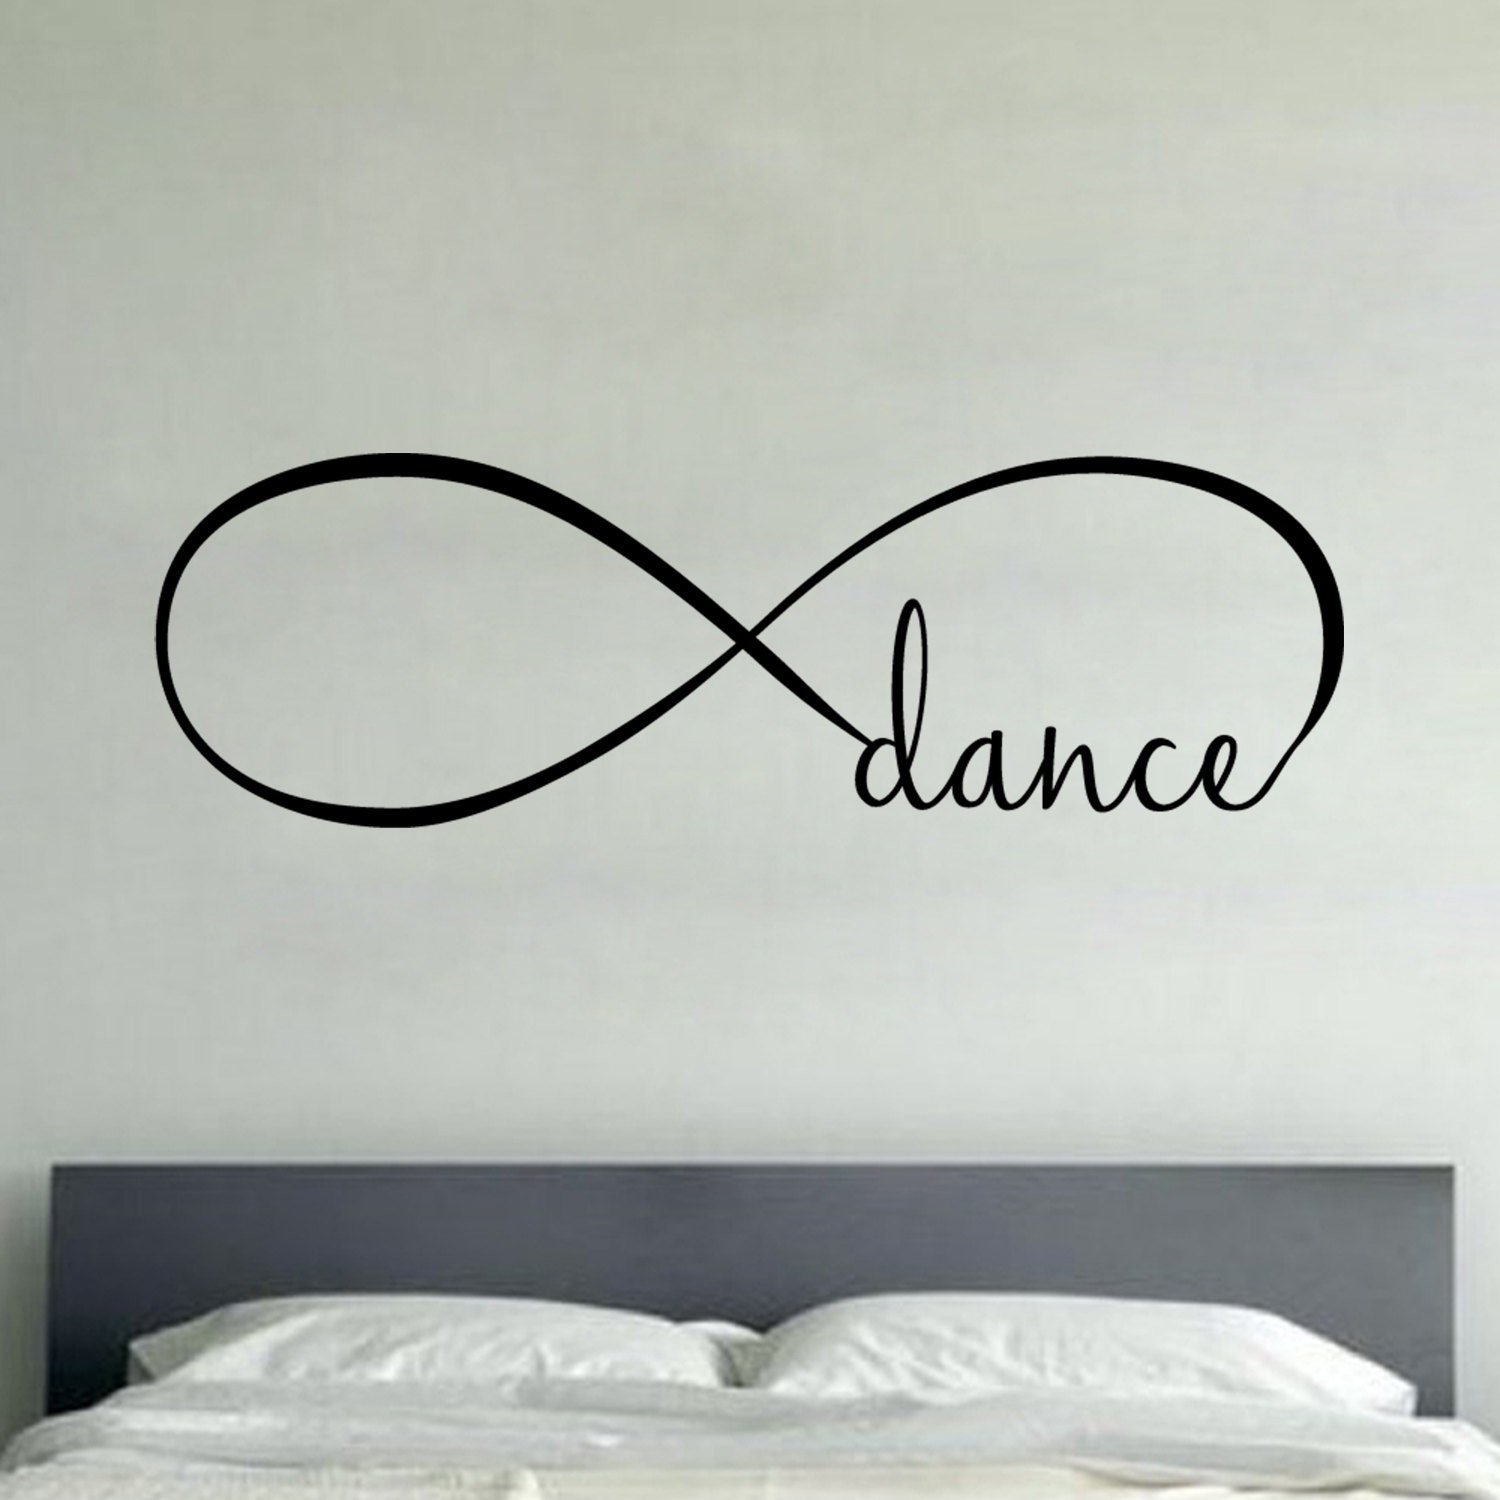 infinity dance wall vinyl decal sticker family kids room zoom